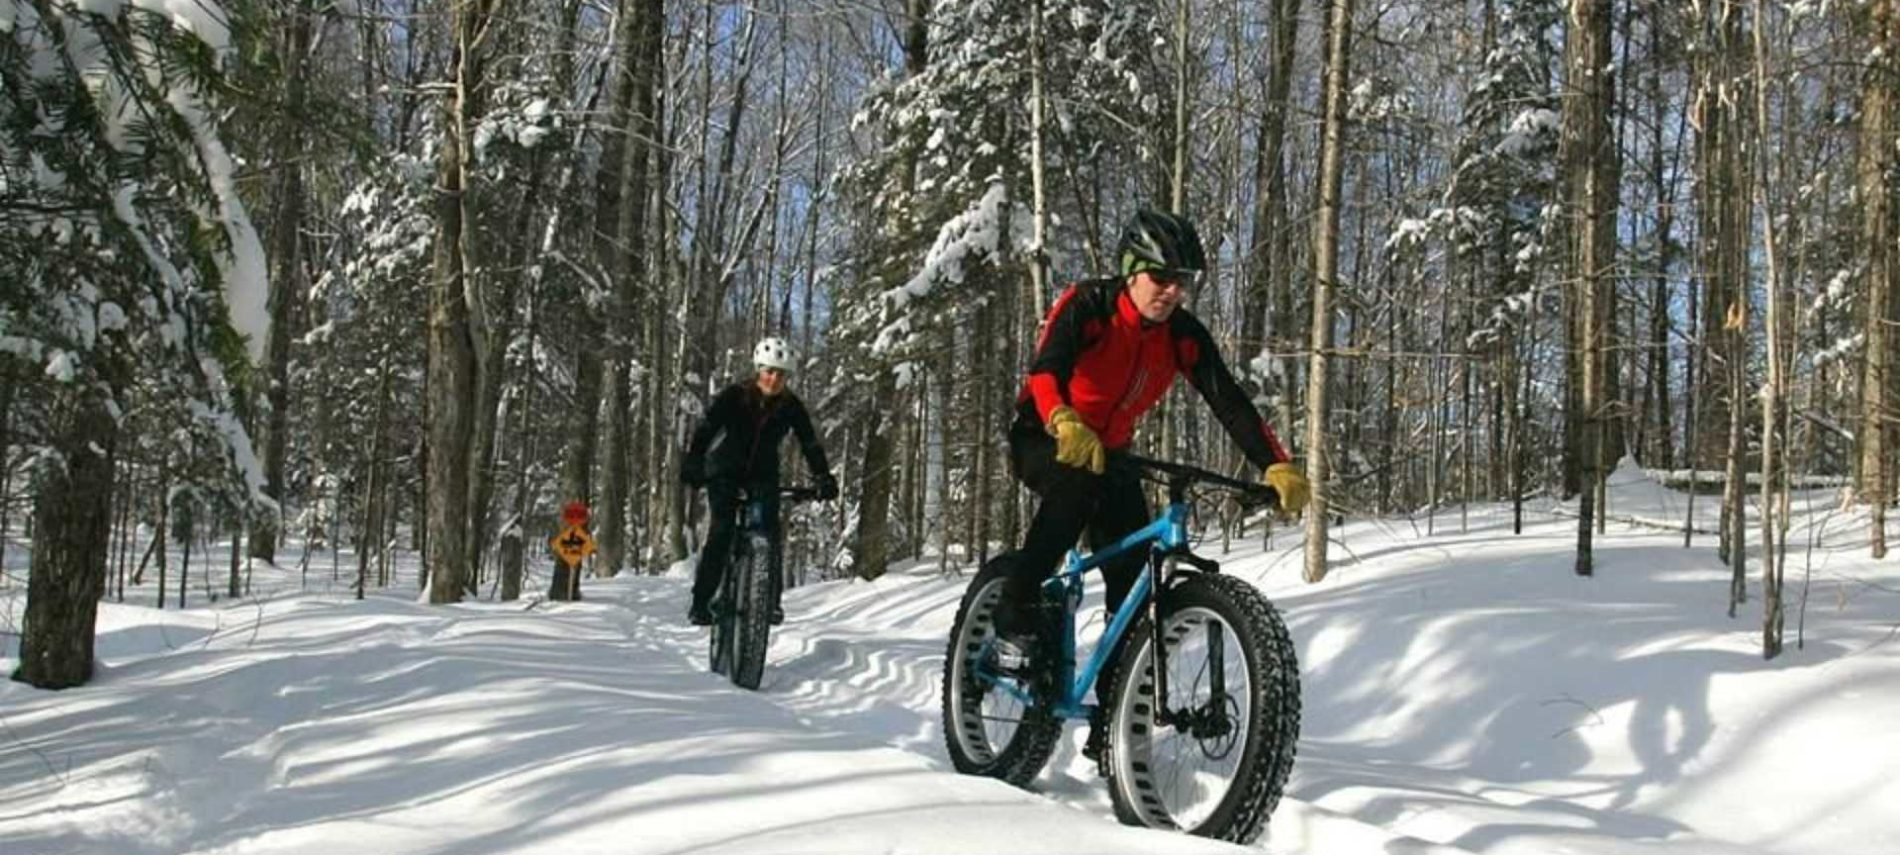 Kingdom Trails fat biking & cross country ski trails